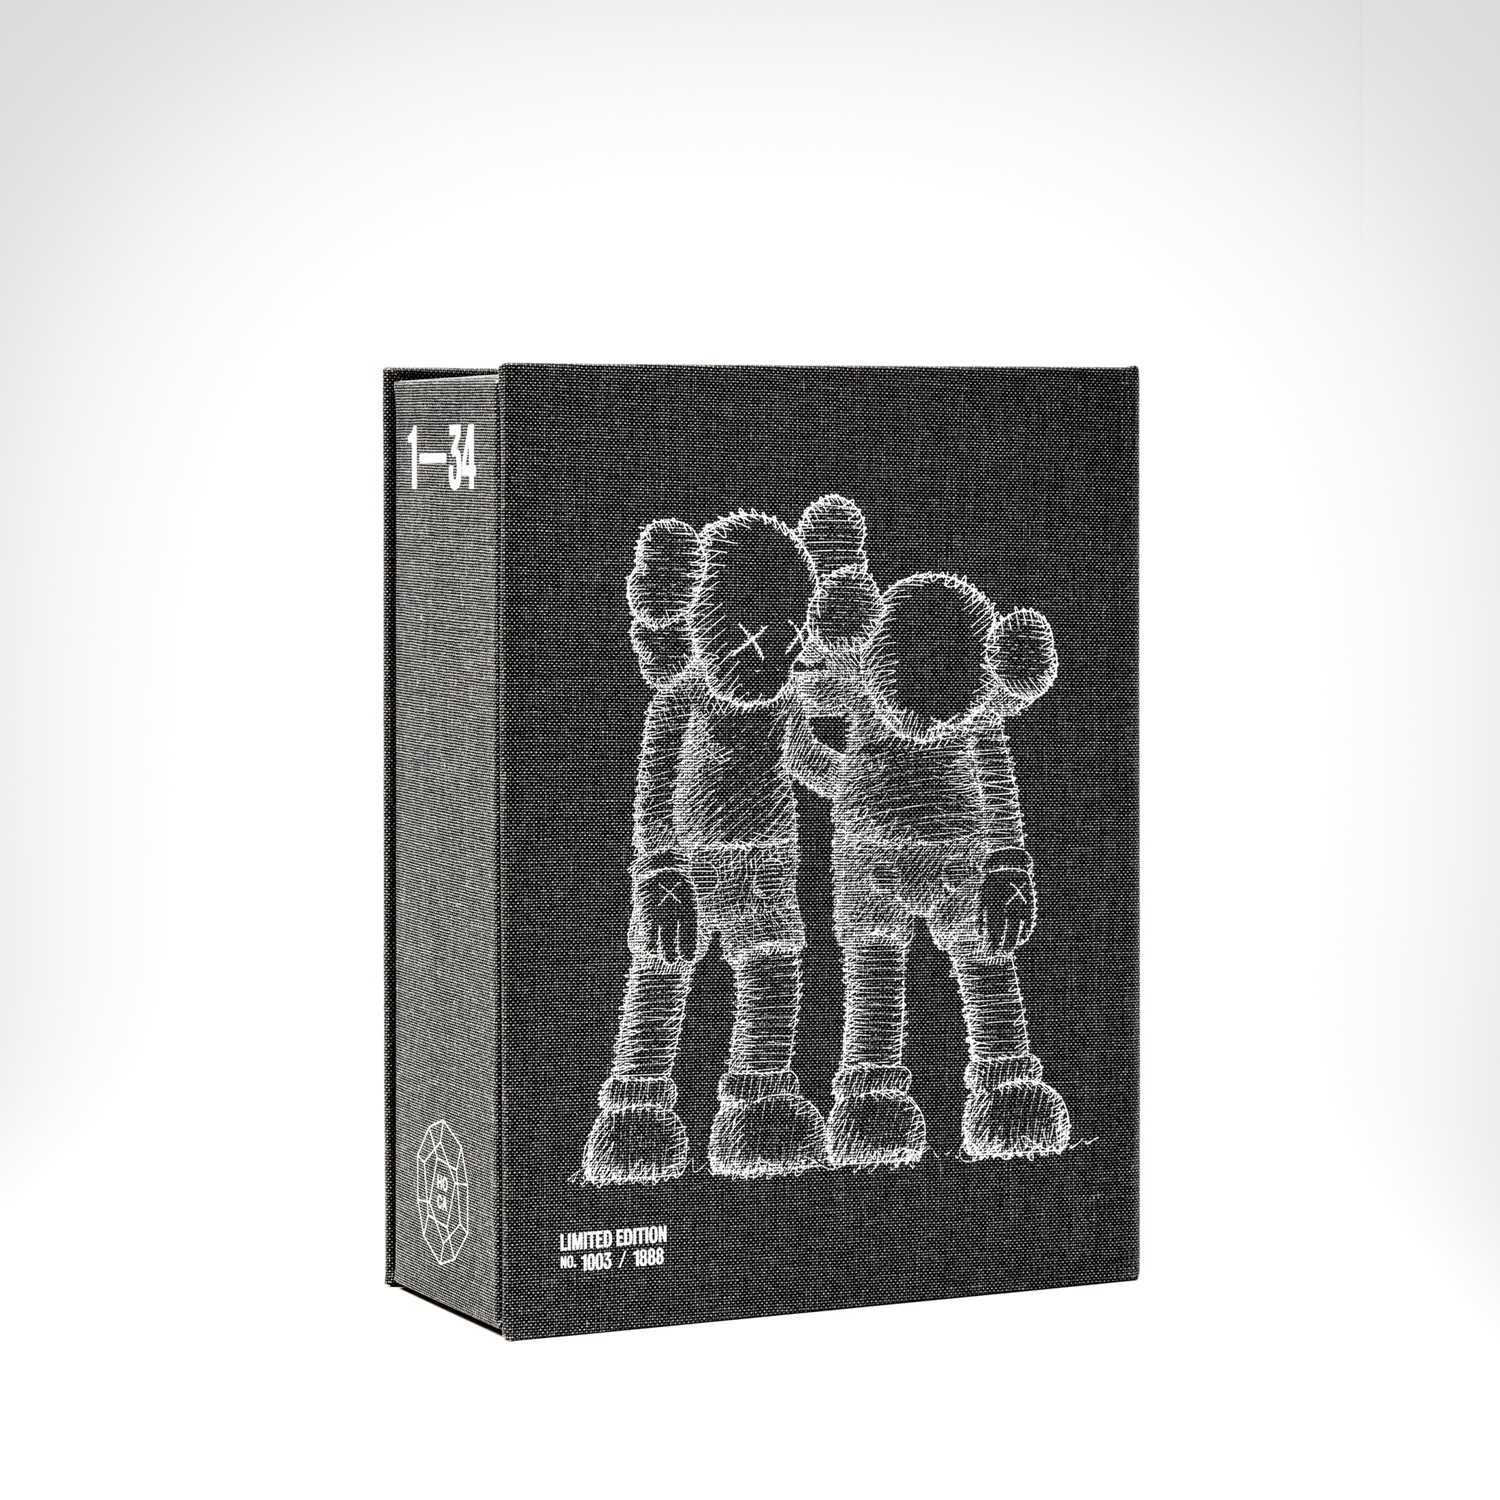 Lot 94 - Kaws (American 1974-), 'Along The Way', 2020